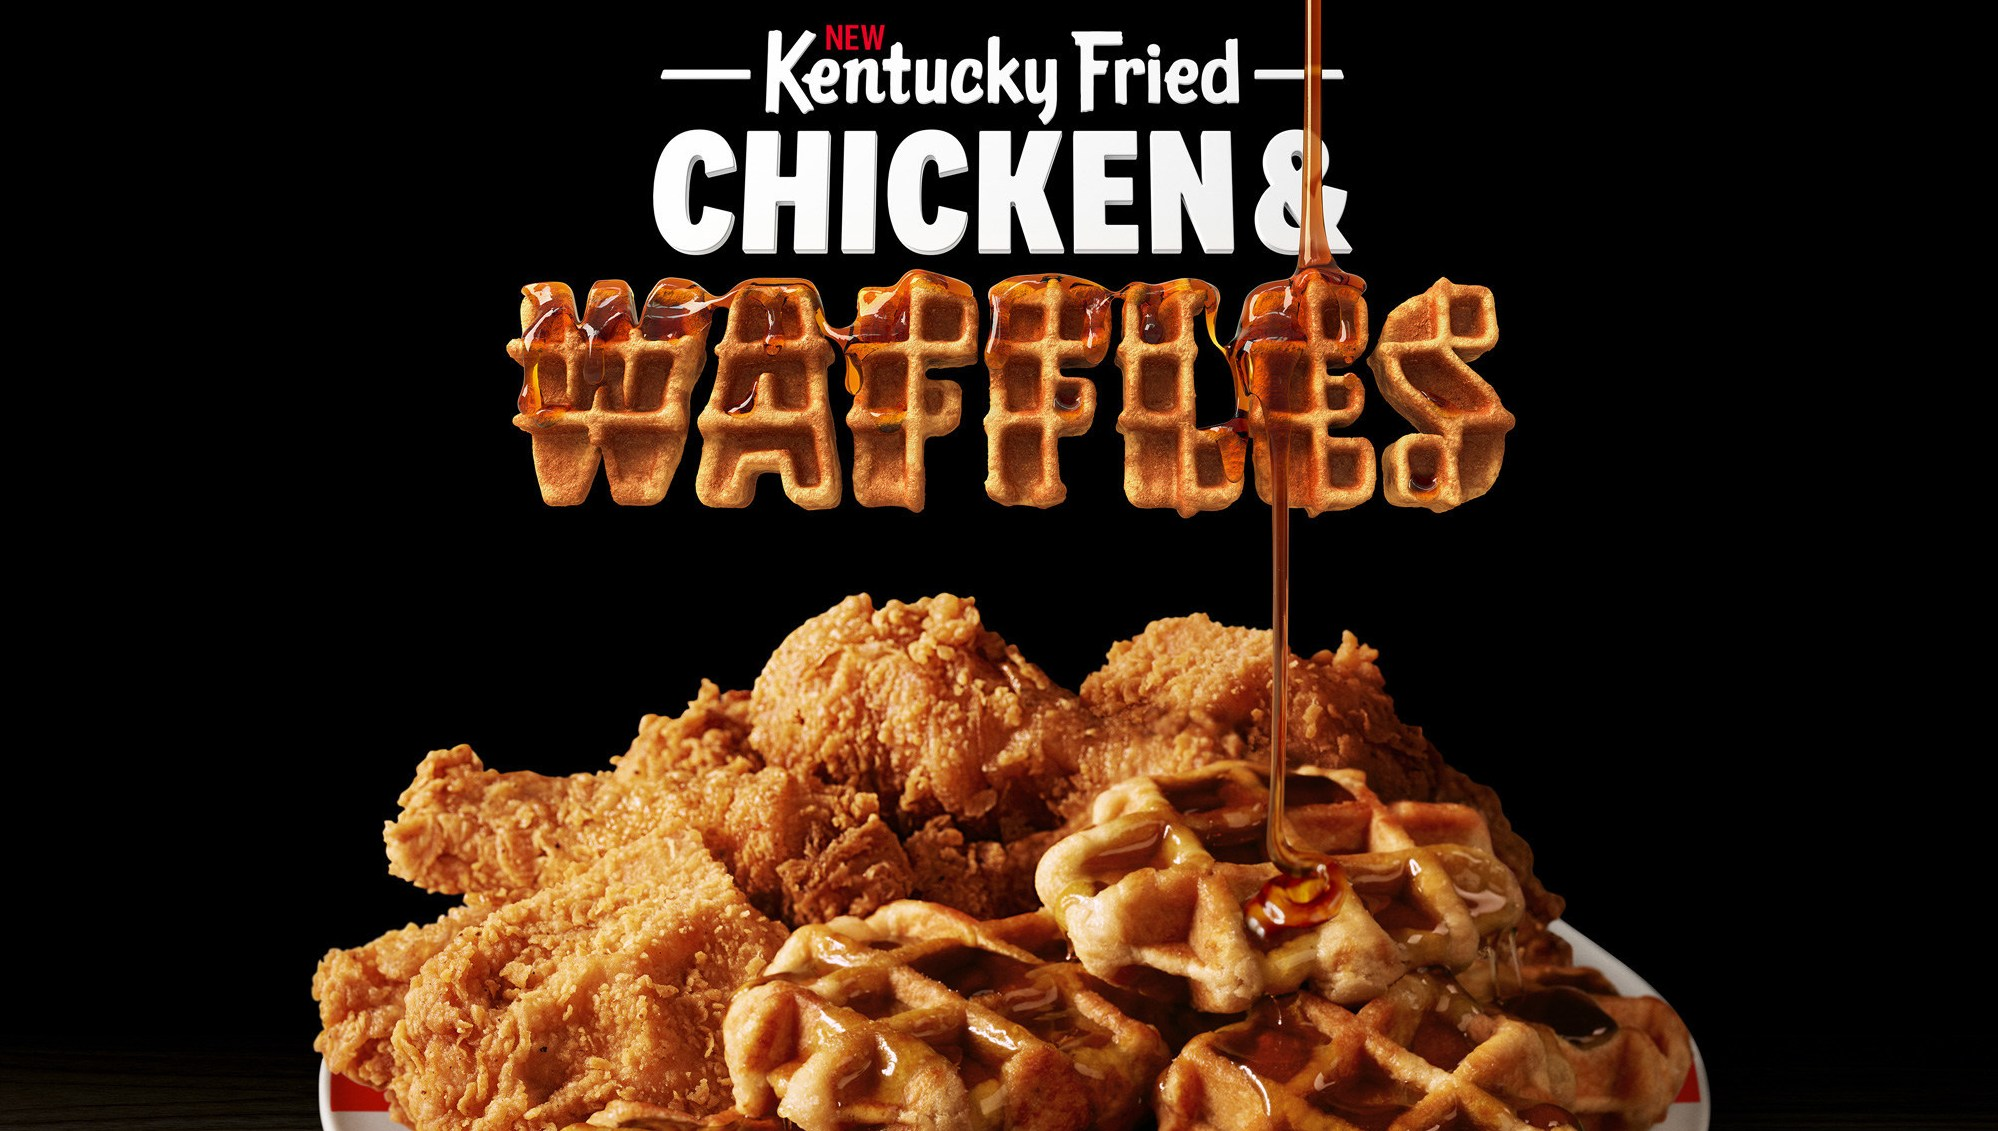 KFC Chicken & Waffles